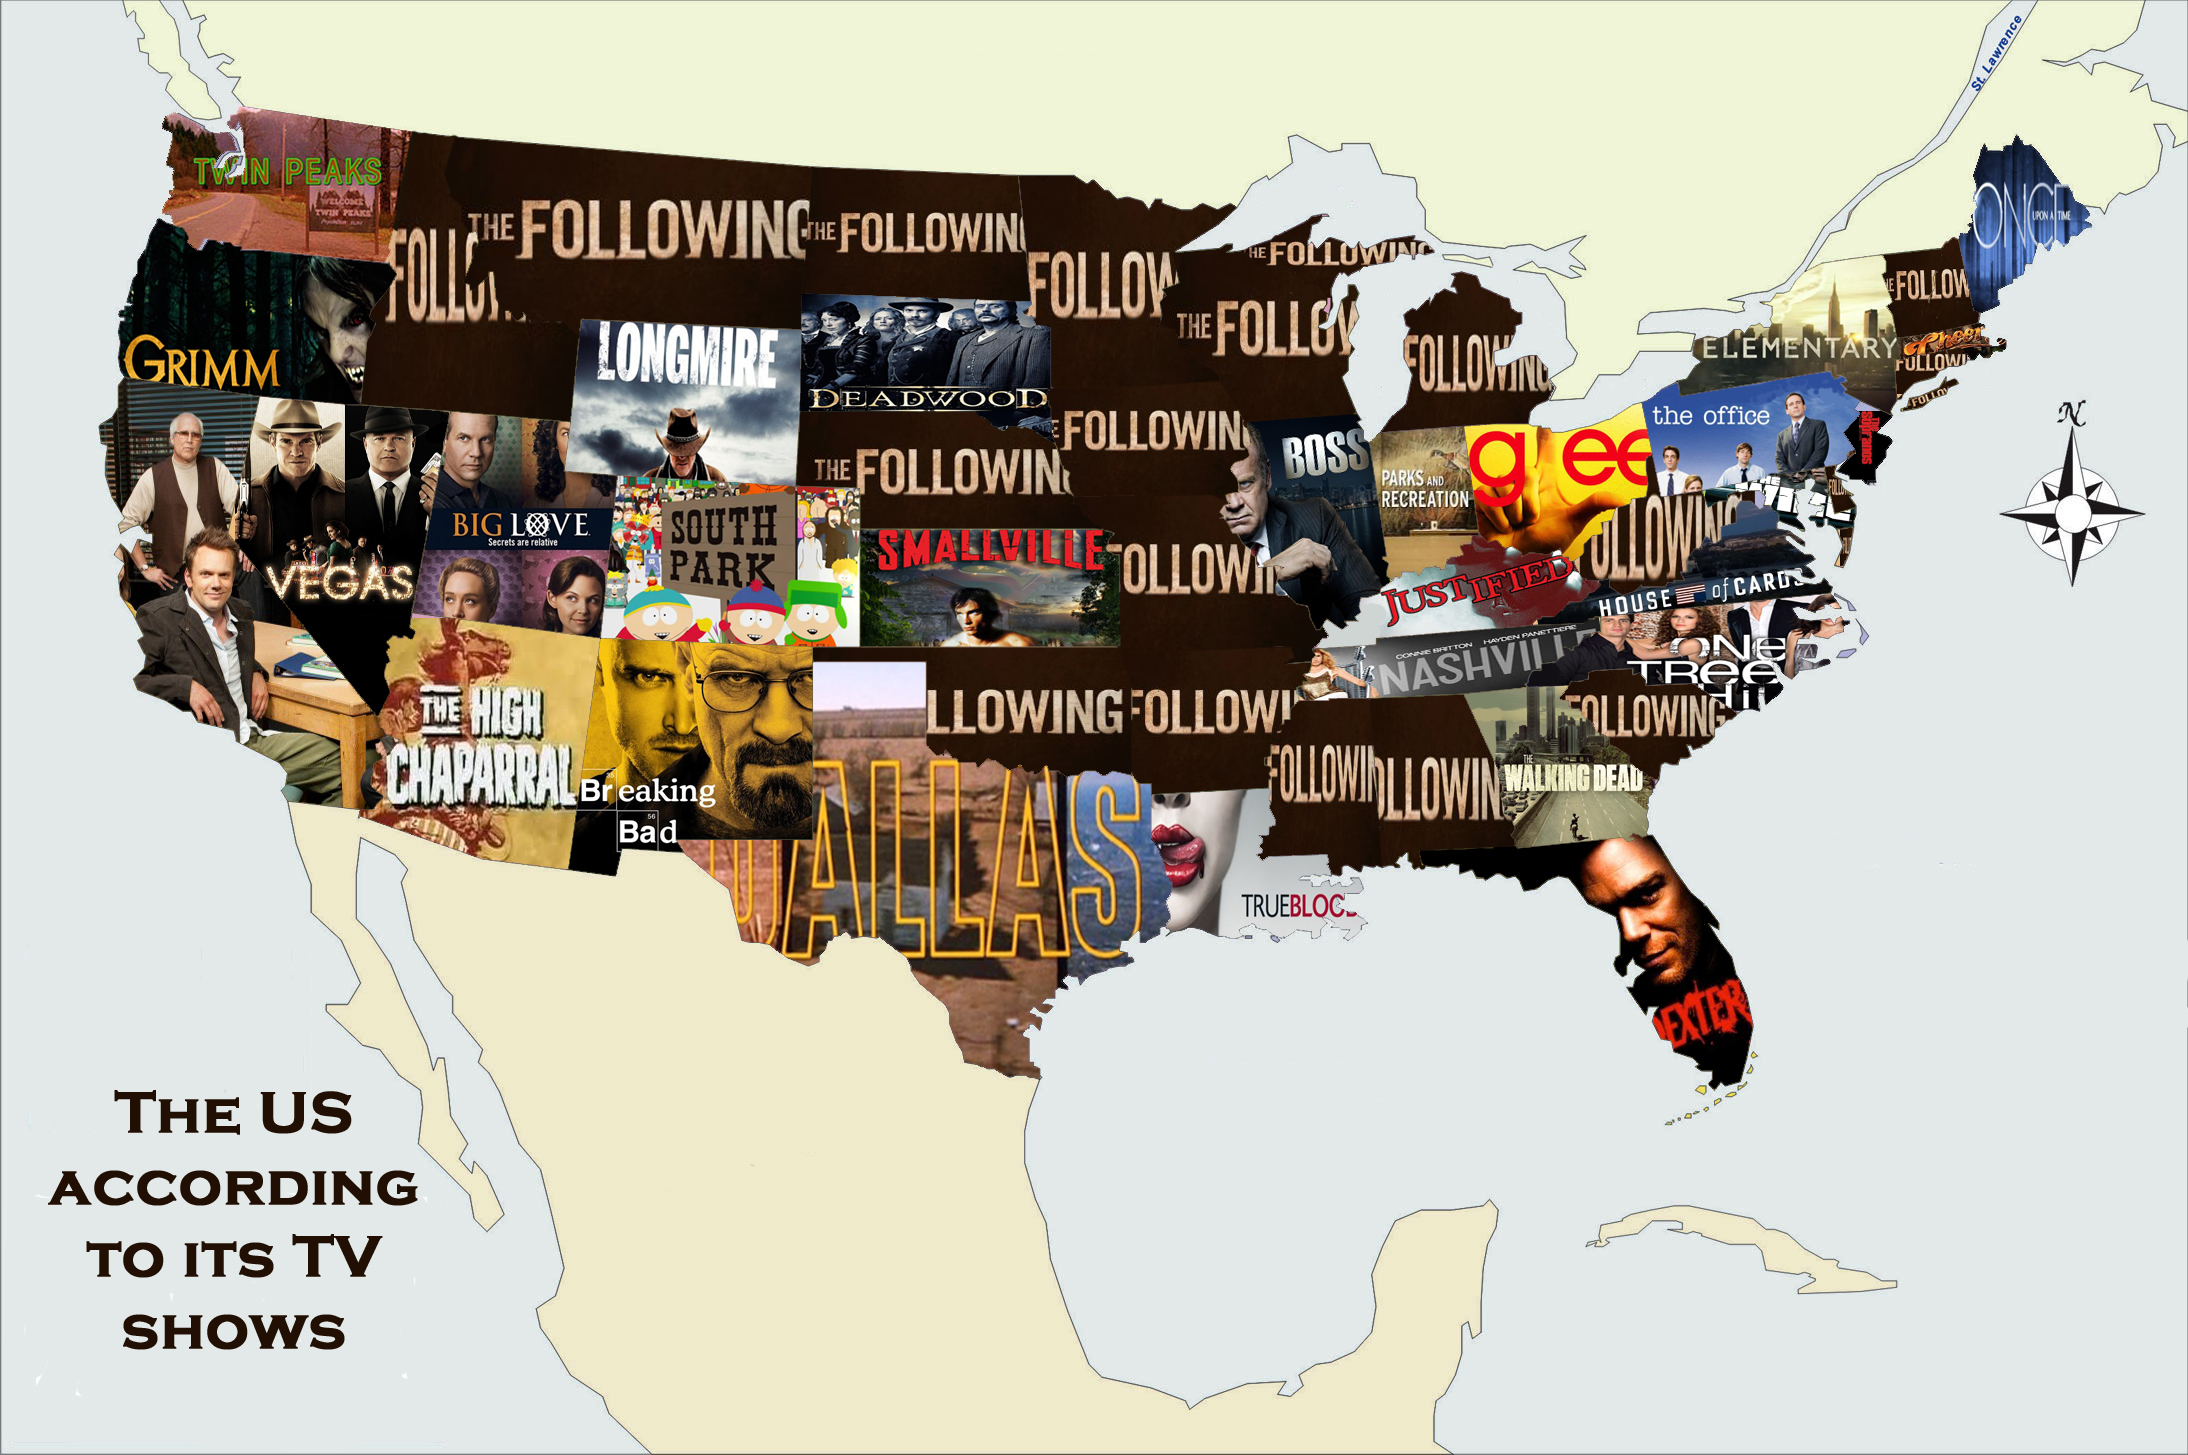 America according to its TV shows